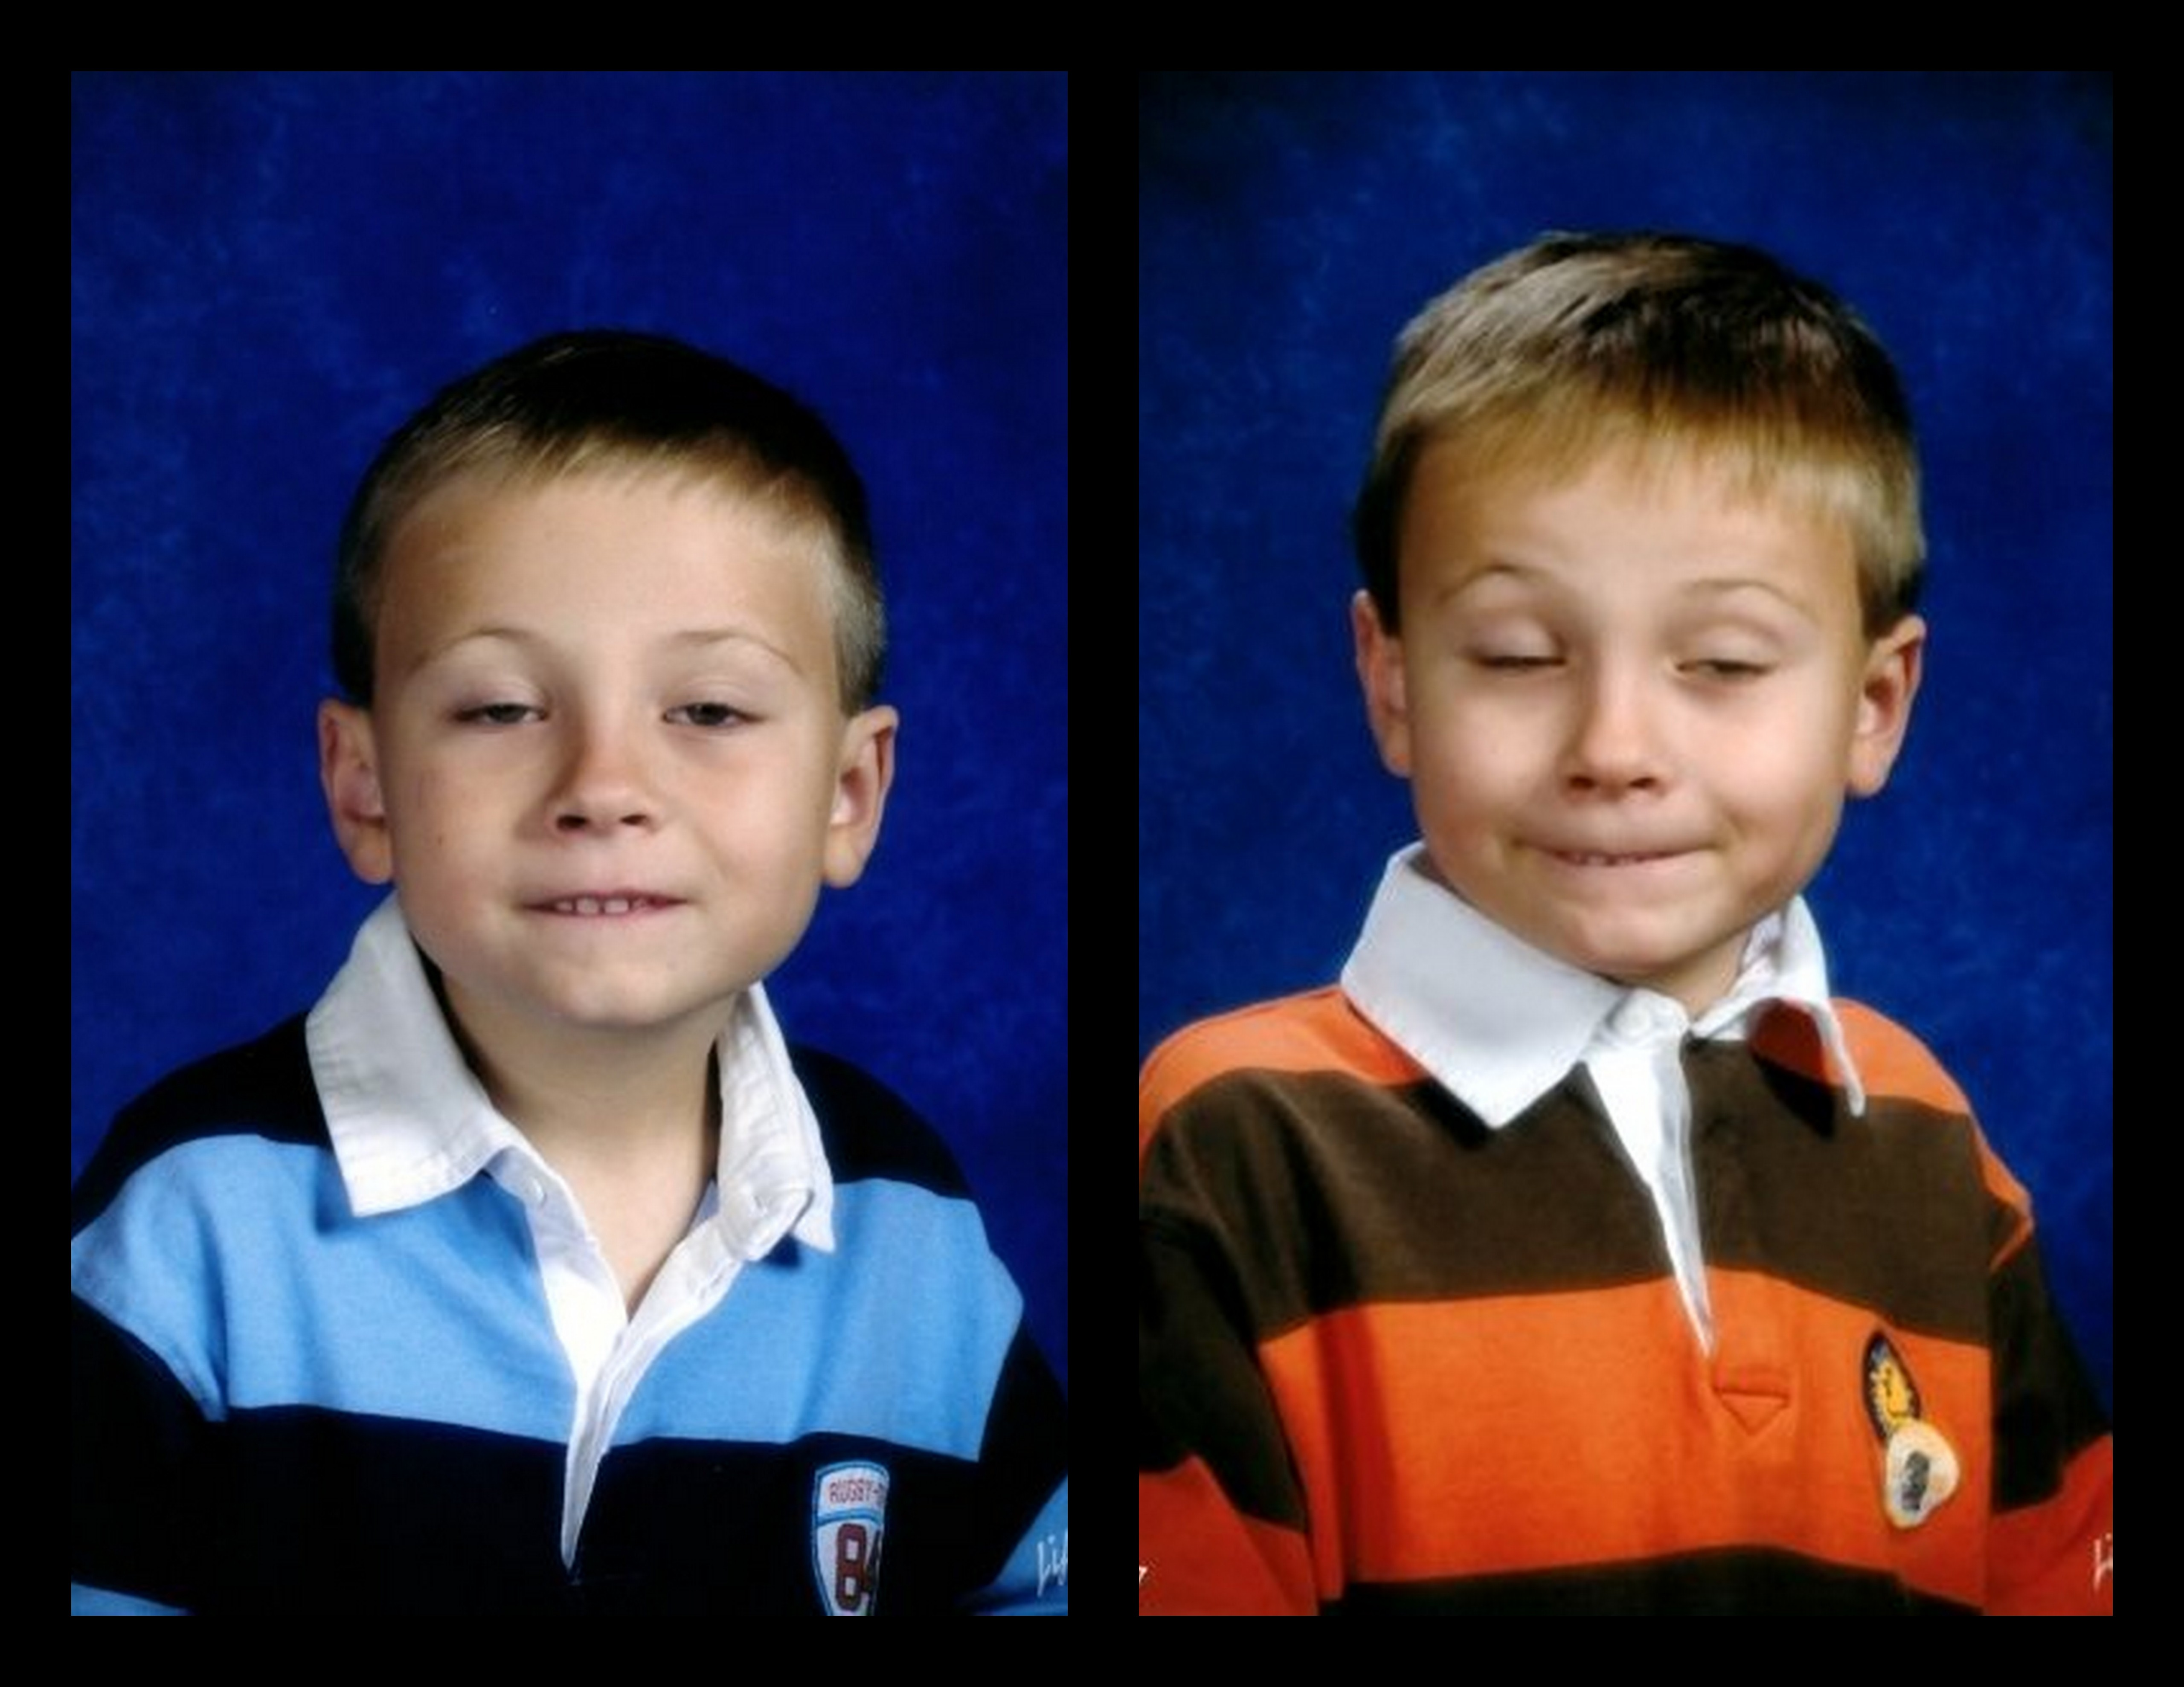 funny school picture